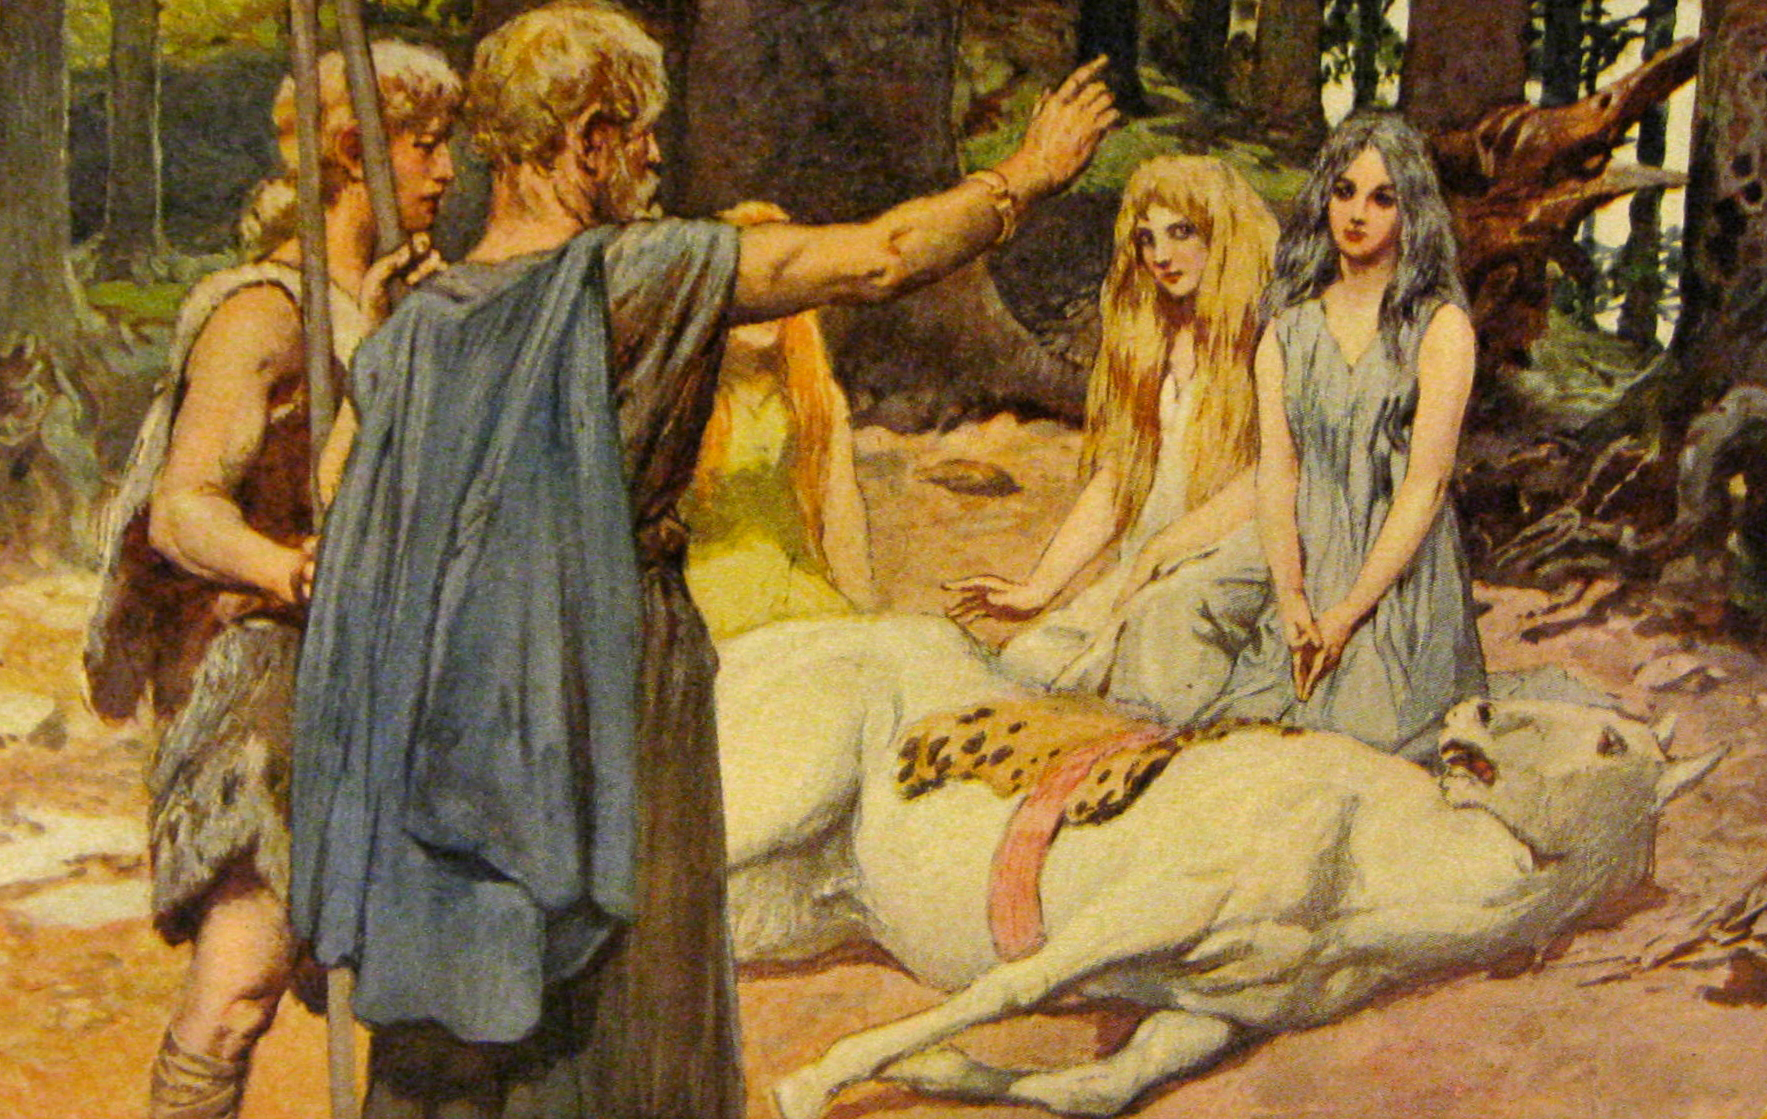 Baldr | Mythology Wiki | FANDOM powered by Wikia